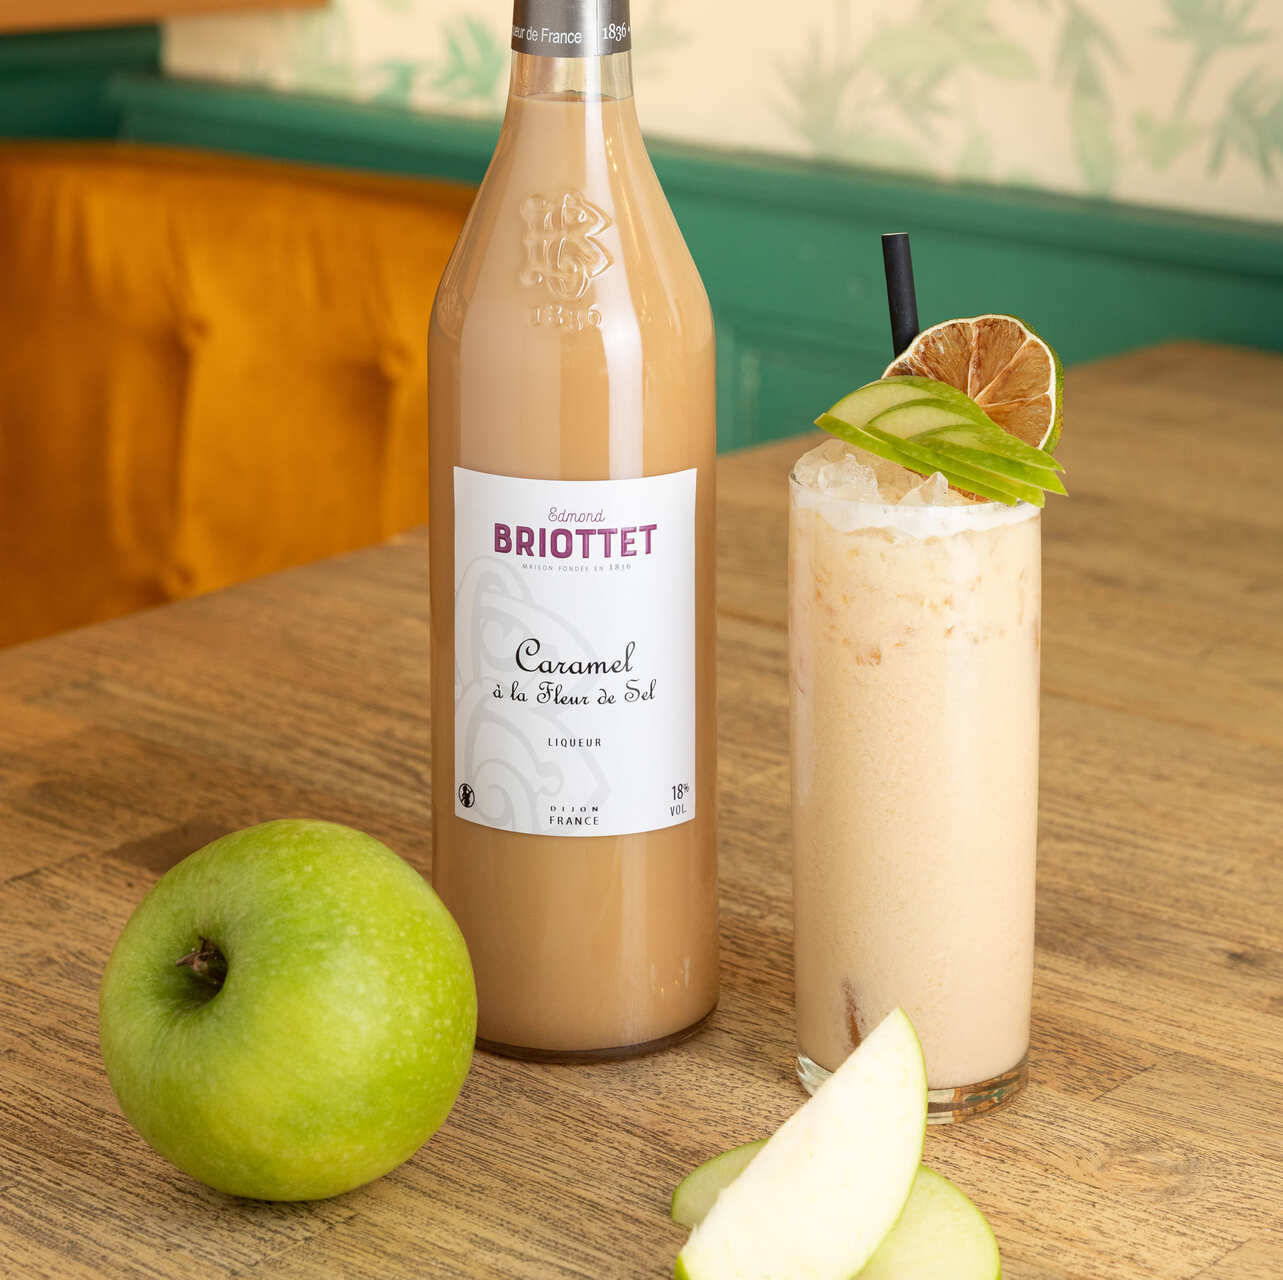 briottet-cocktail-toffee-apple-caramel-a-la-fleur-de-sel-home